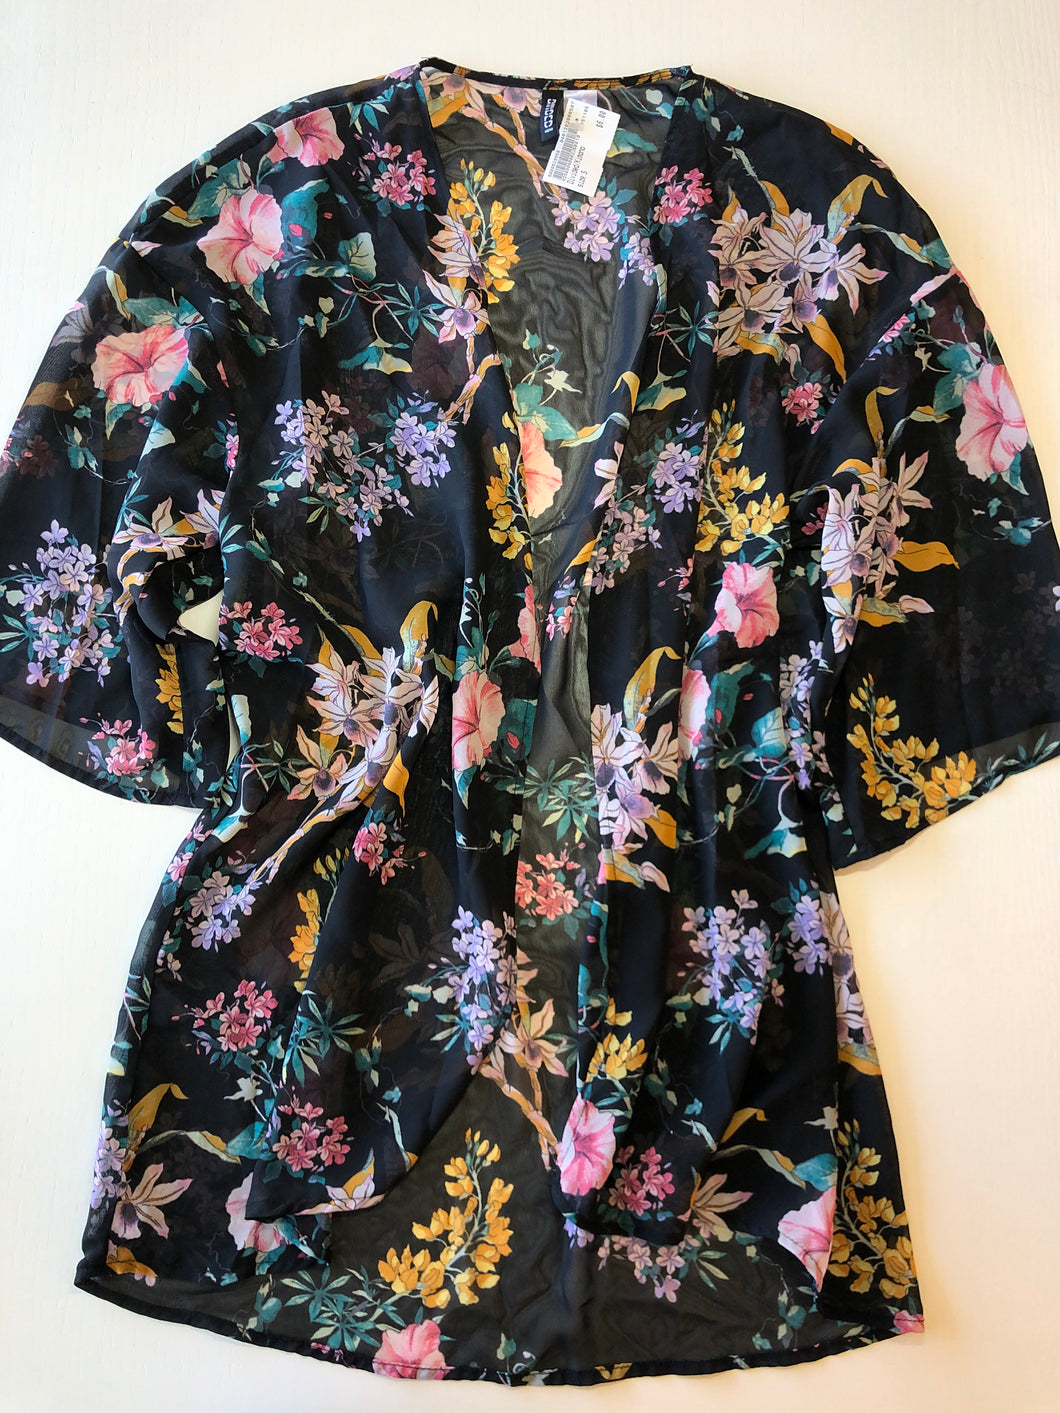 Gently Used Women's Divided Kimono Size S